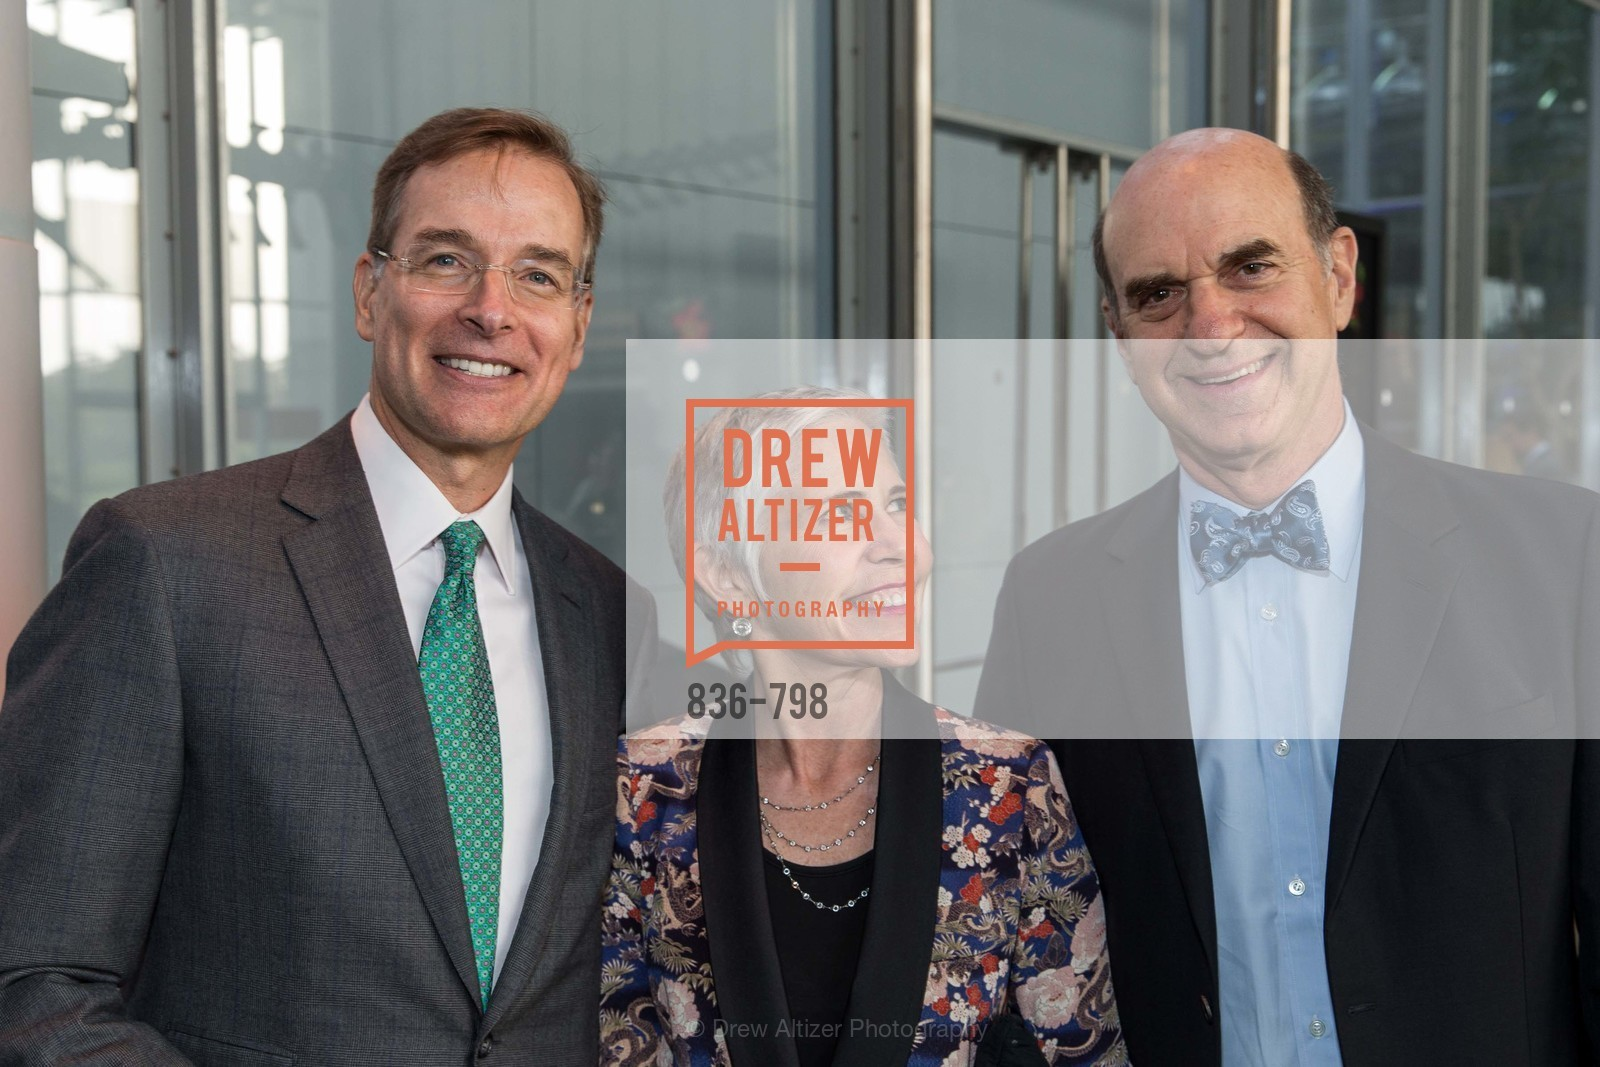 John Atwater, Laura Lazarus, Bob Fisher, CALIFORNIA ACADEMY OF SCIENCES - Big Bang Gala 2015, US, April 23rd, 2015,Drew Altizer, Drew Altizer Photography, full-service agency, private events, San Francisco photographer, photographer california